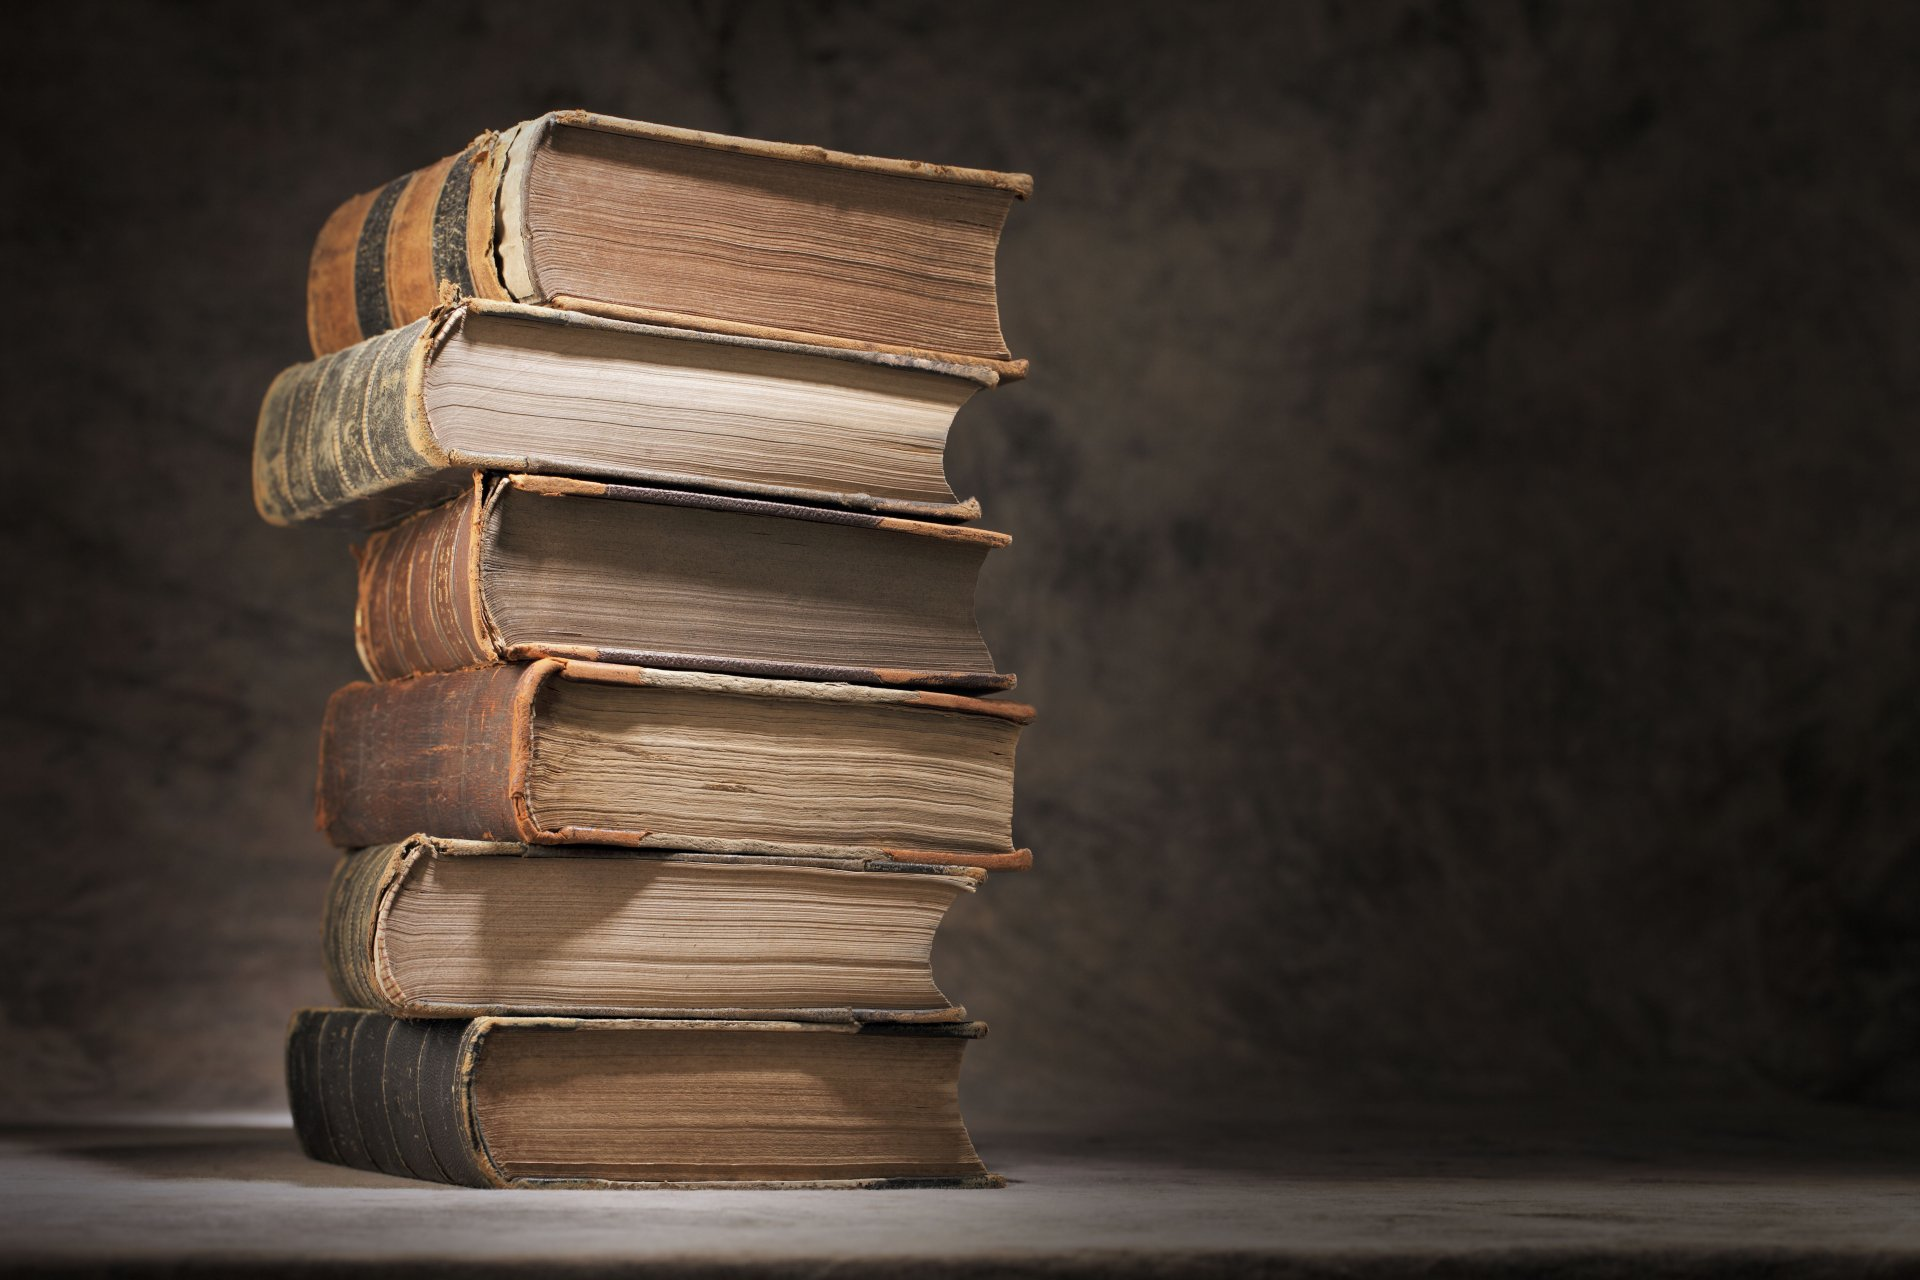 books knowledge table stack vintage luxury folios teaching light and ignorance is darkness blur bokeh close up grey background wallpaper.